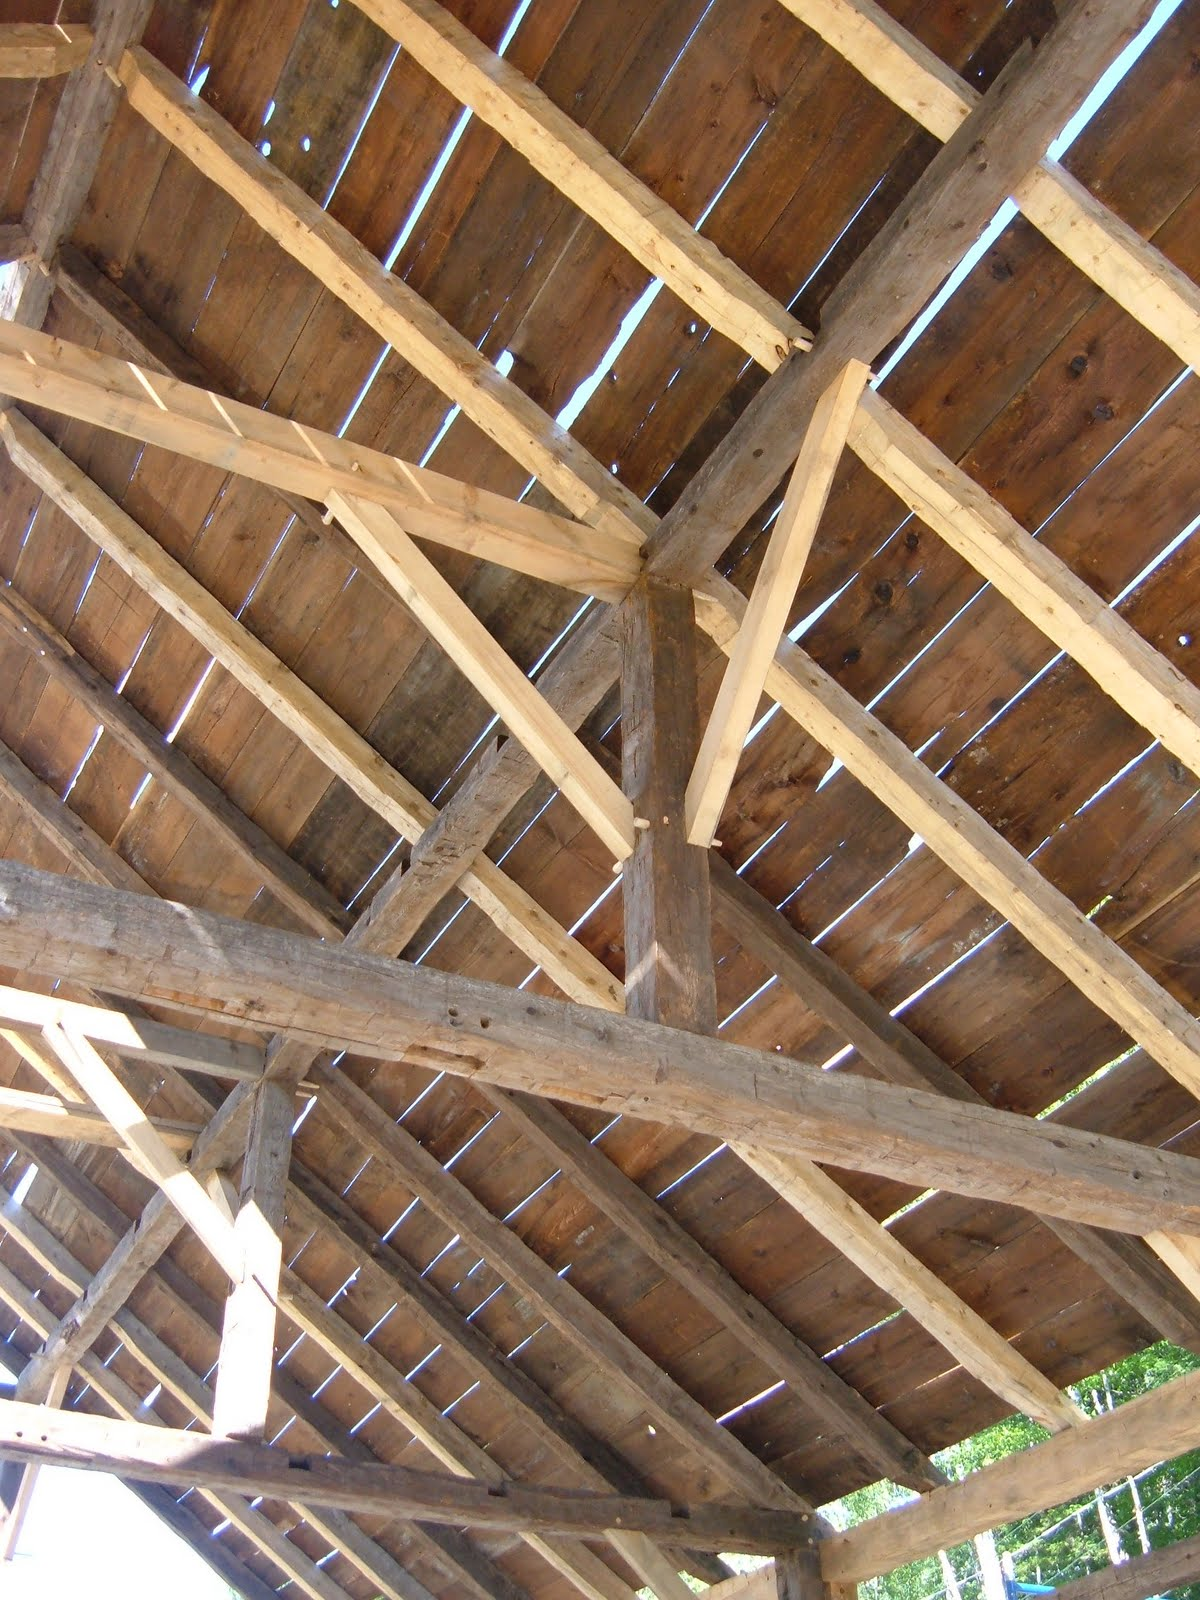 The homeowners had piles of the original boarding that they had hoped to reuse.  Most of the boards were so rotten and thin that there was barely enough to cover the roof.